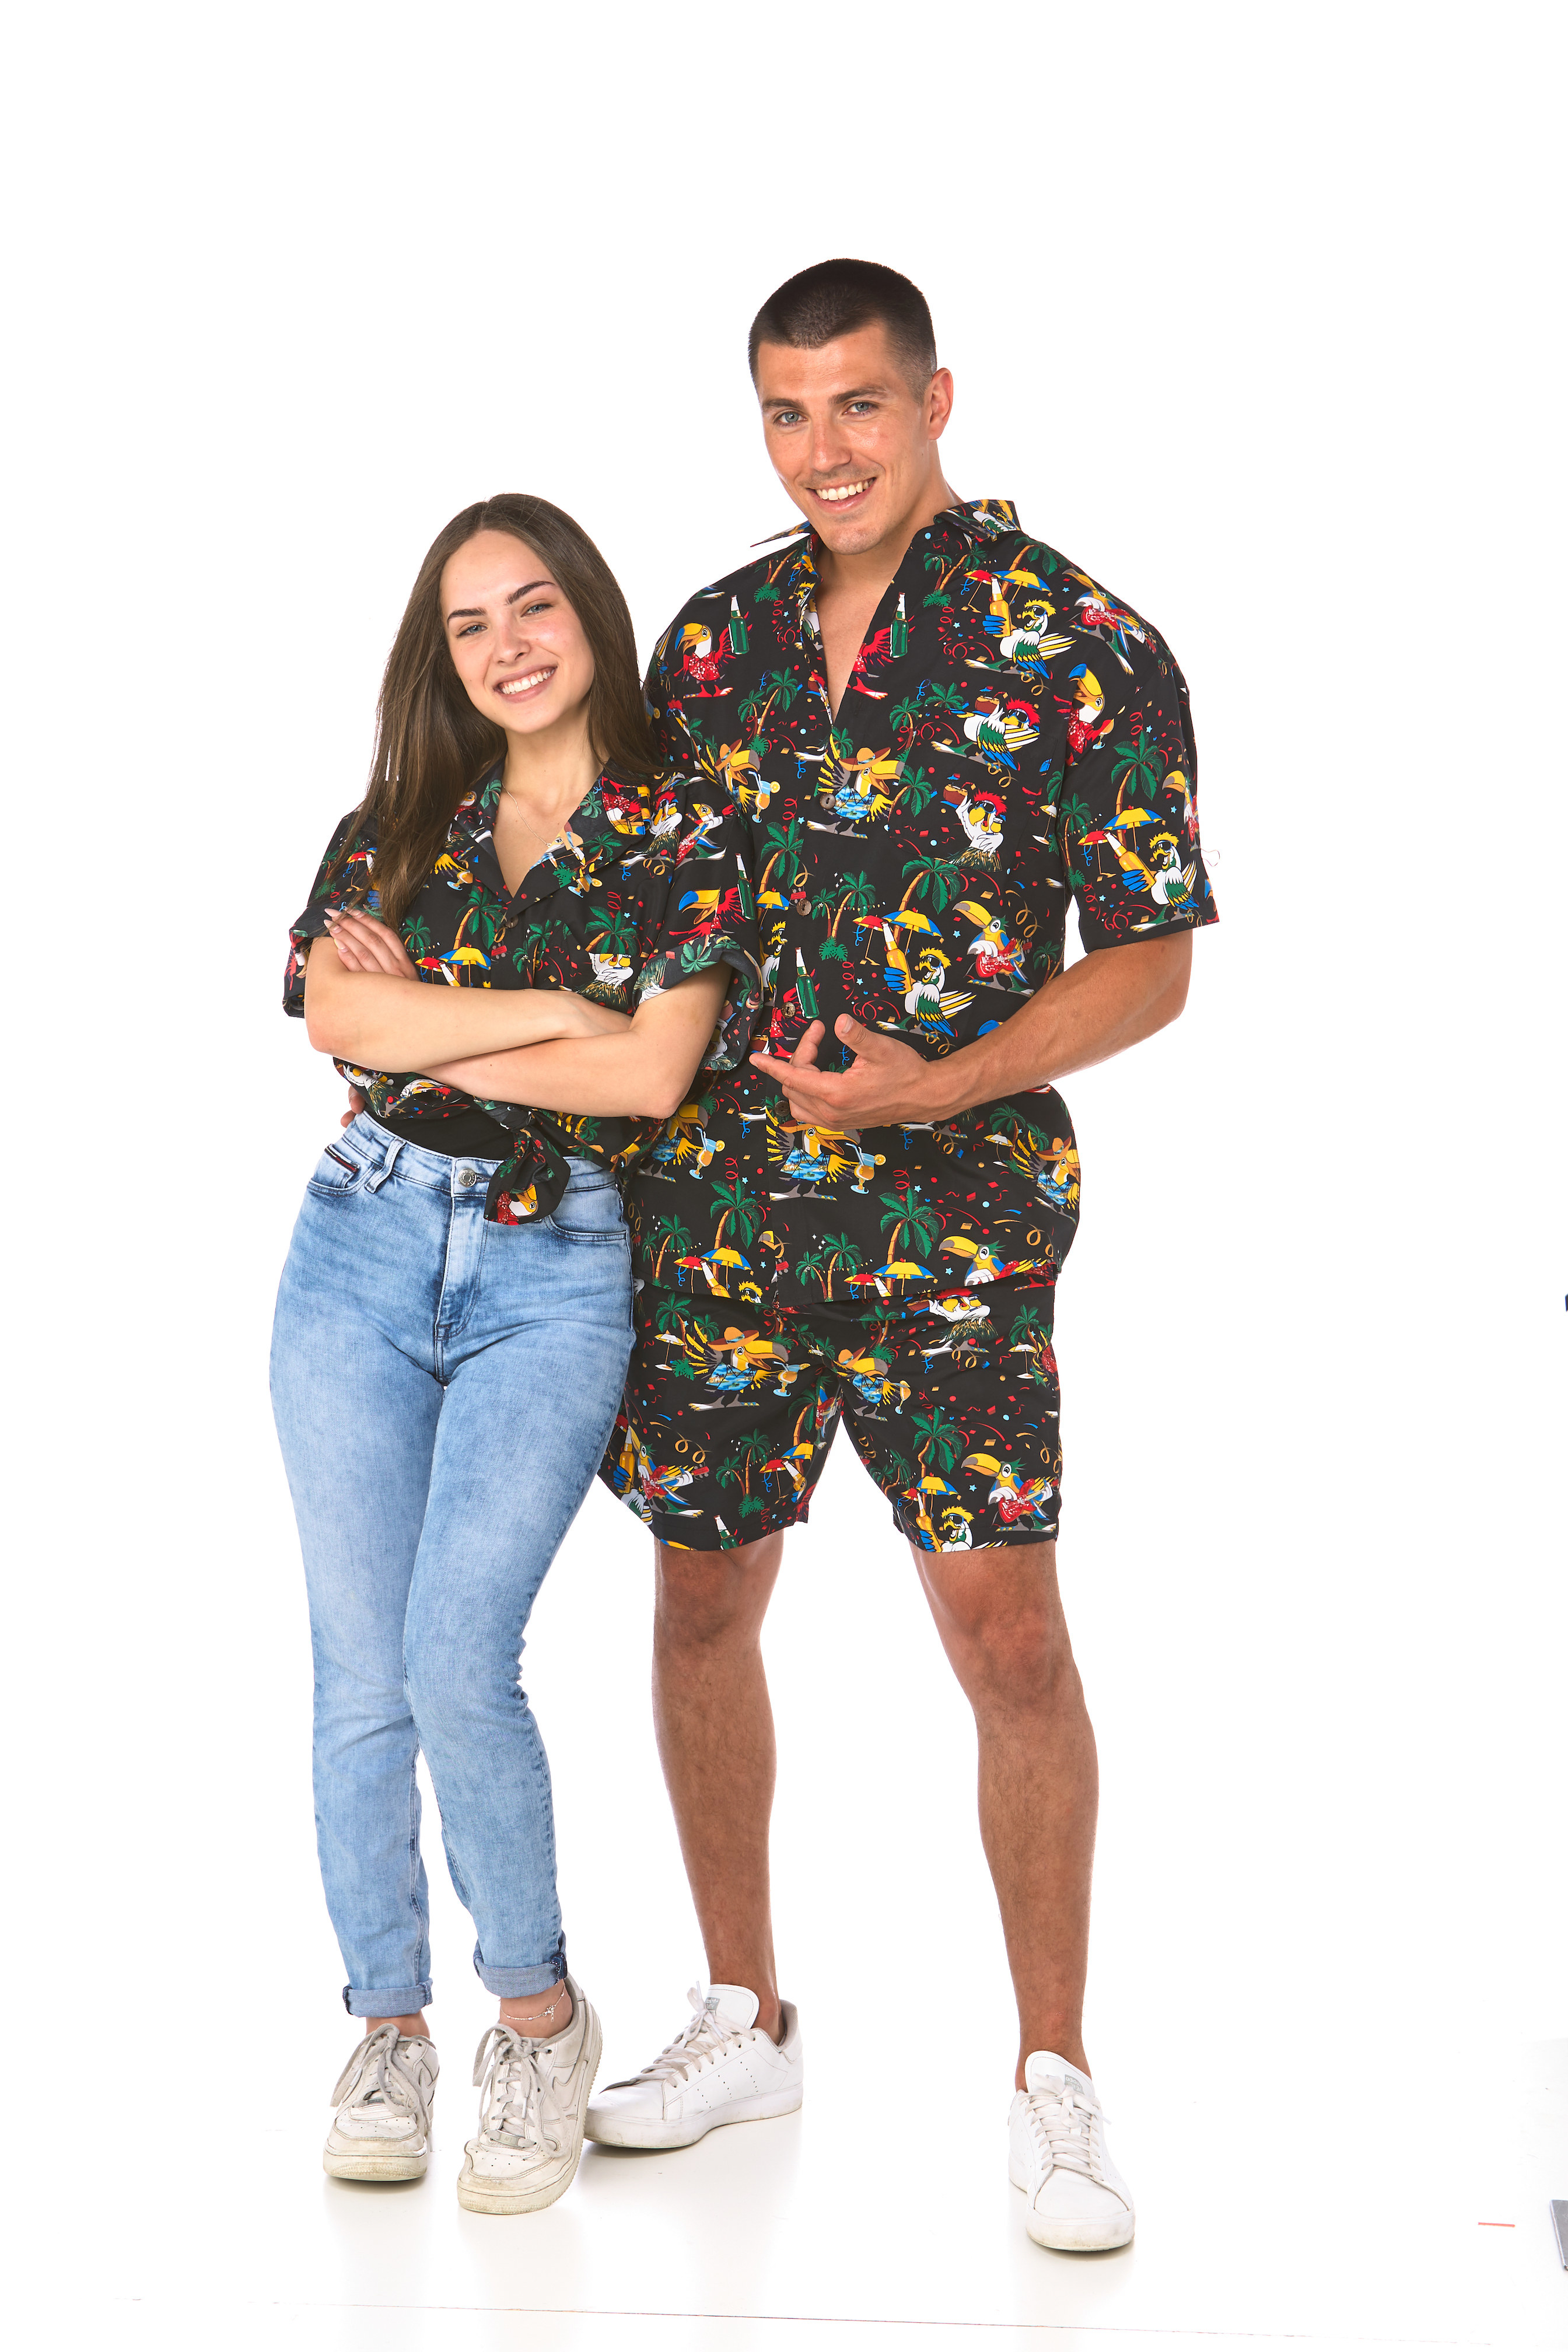 Man and woman wearing a dark shirt with parrots in various holiday scenarios